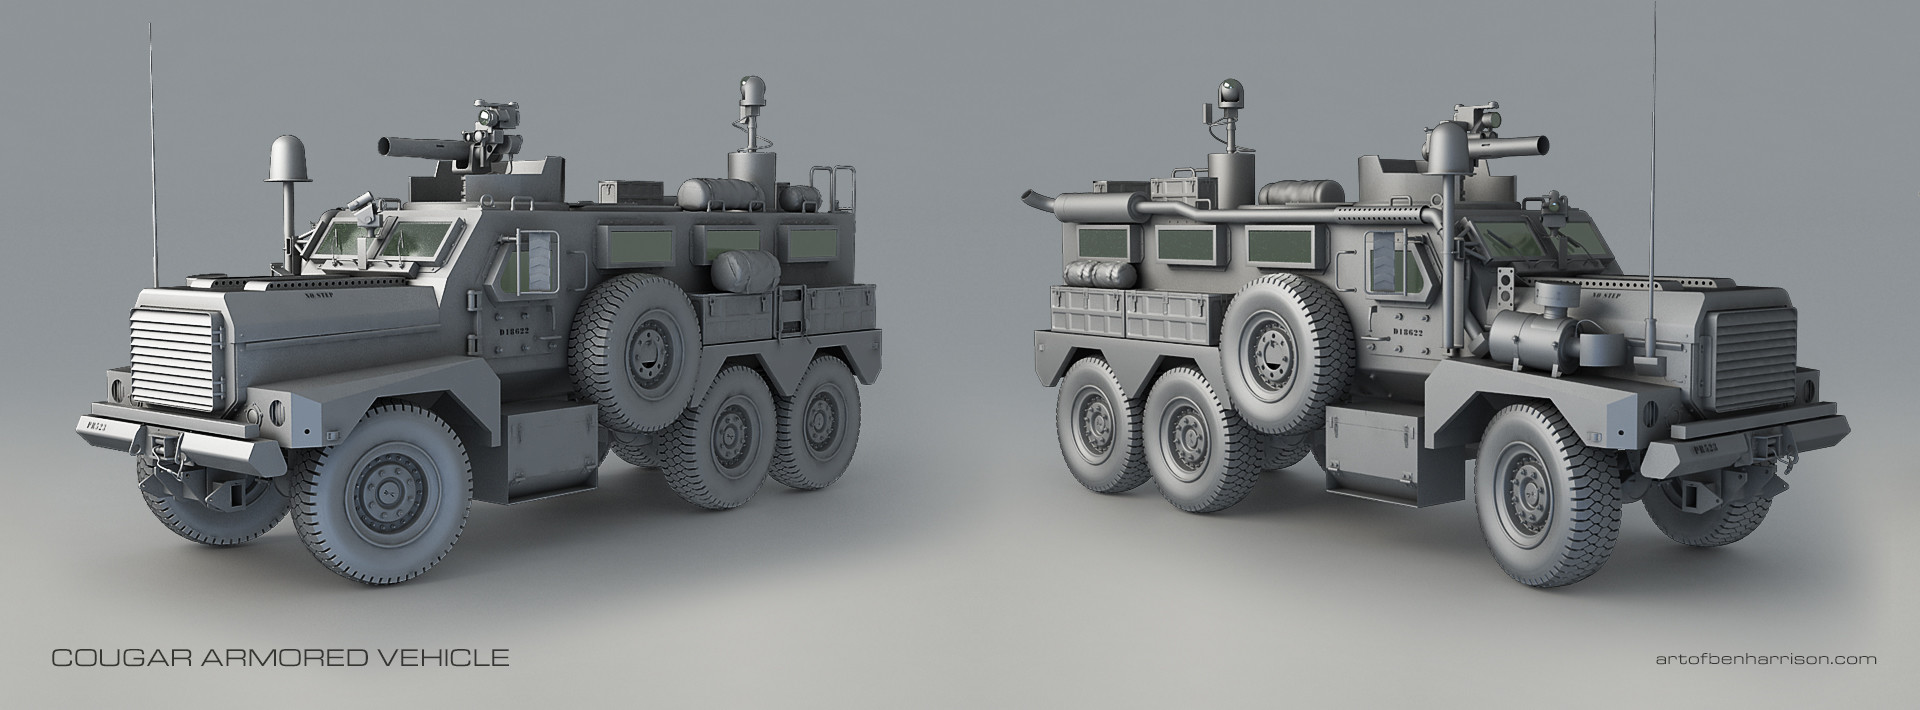 Ben harrison armored vehicle01